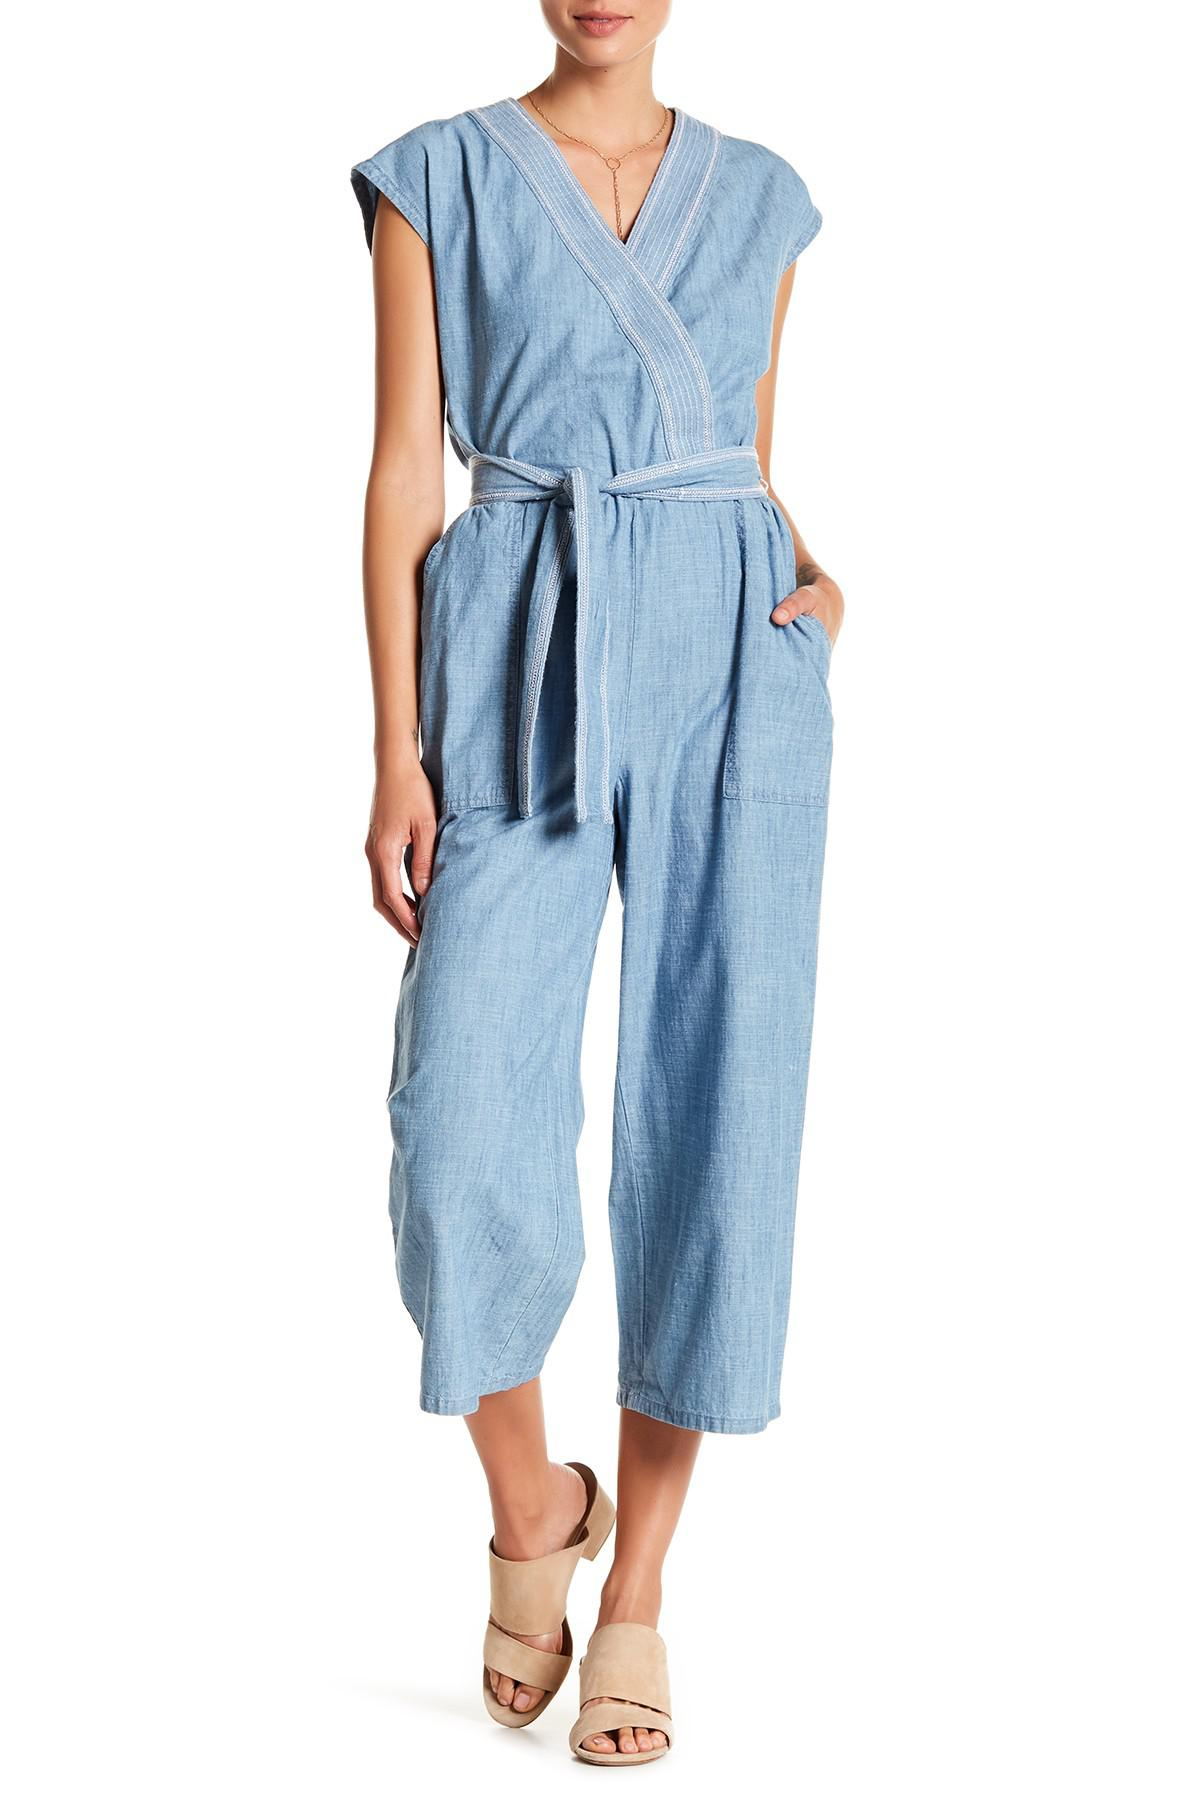 f71fb705768c Lyst - Vince Camuto Jumpsuit in Blue